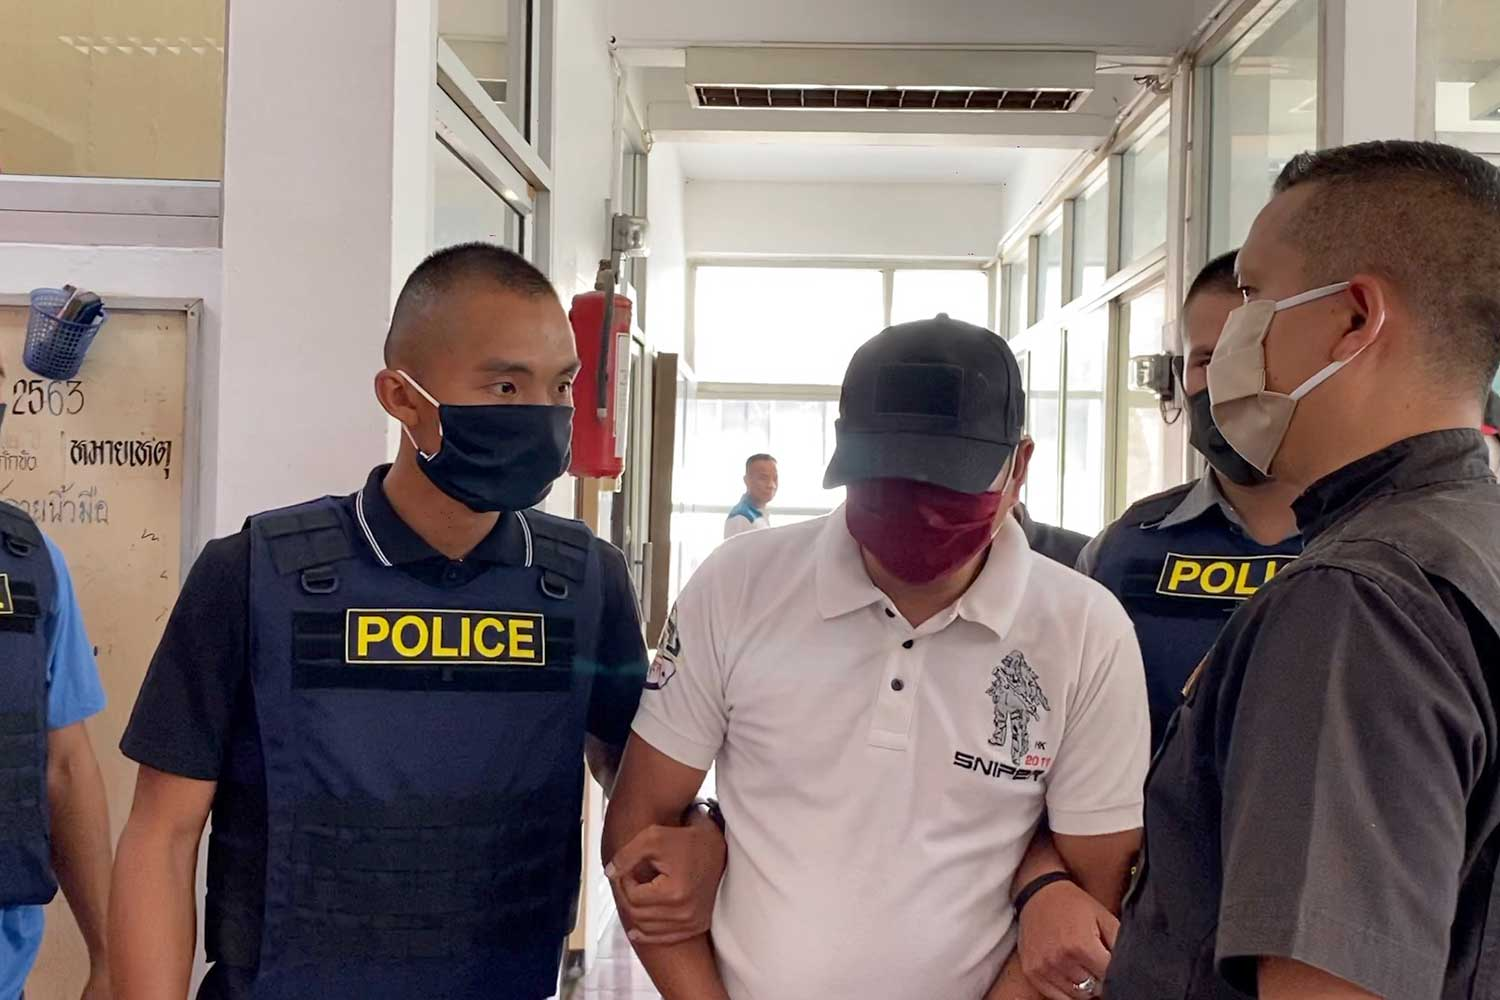 Drug courier caught making large delivery